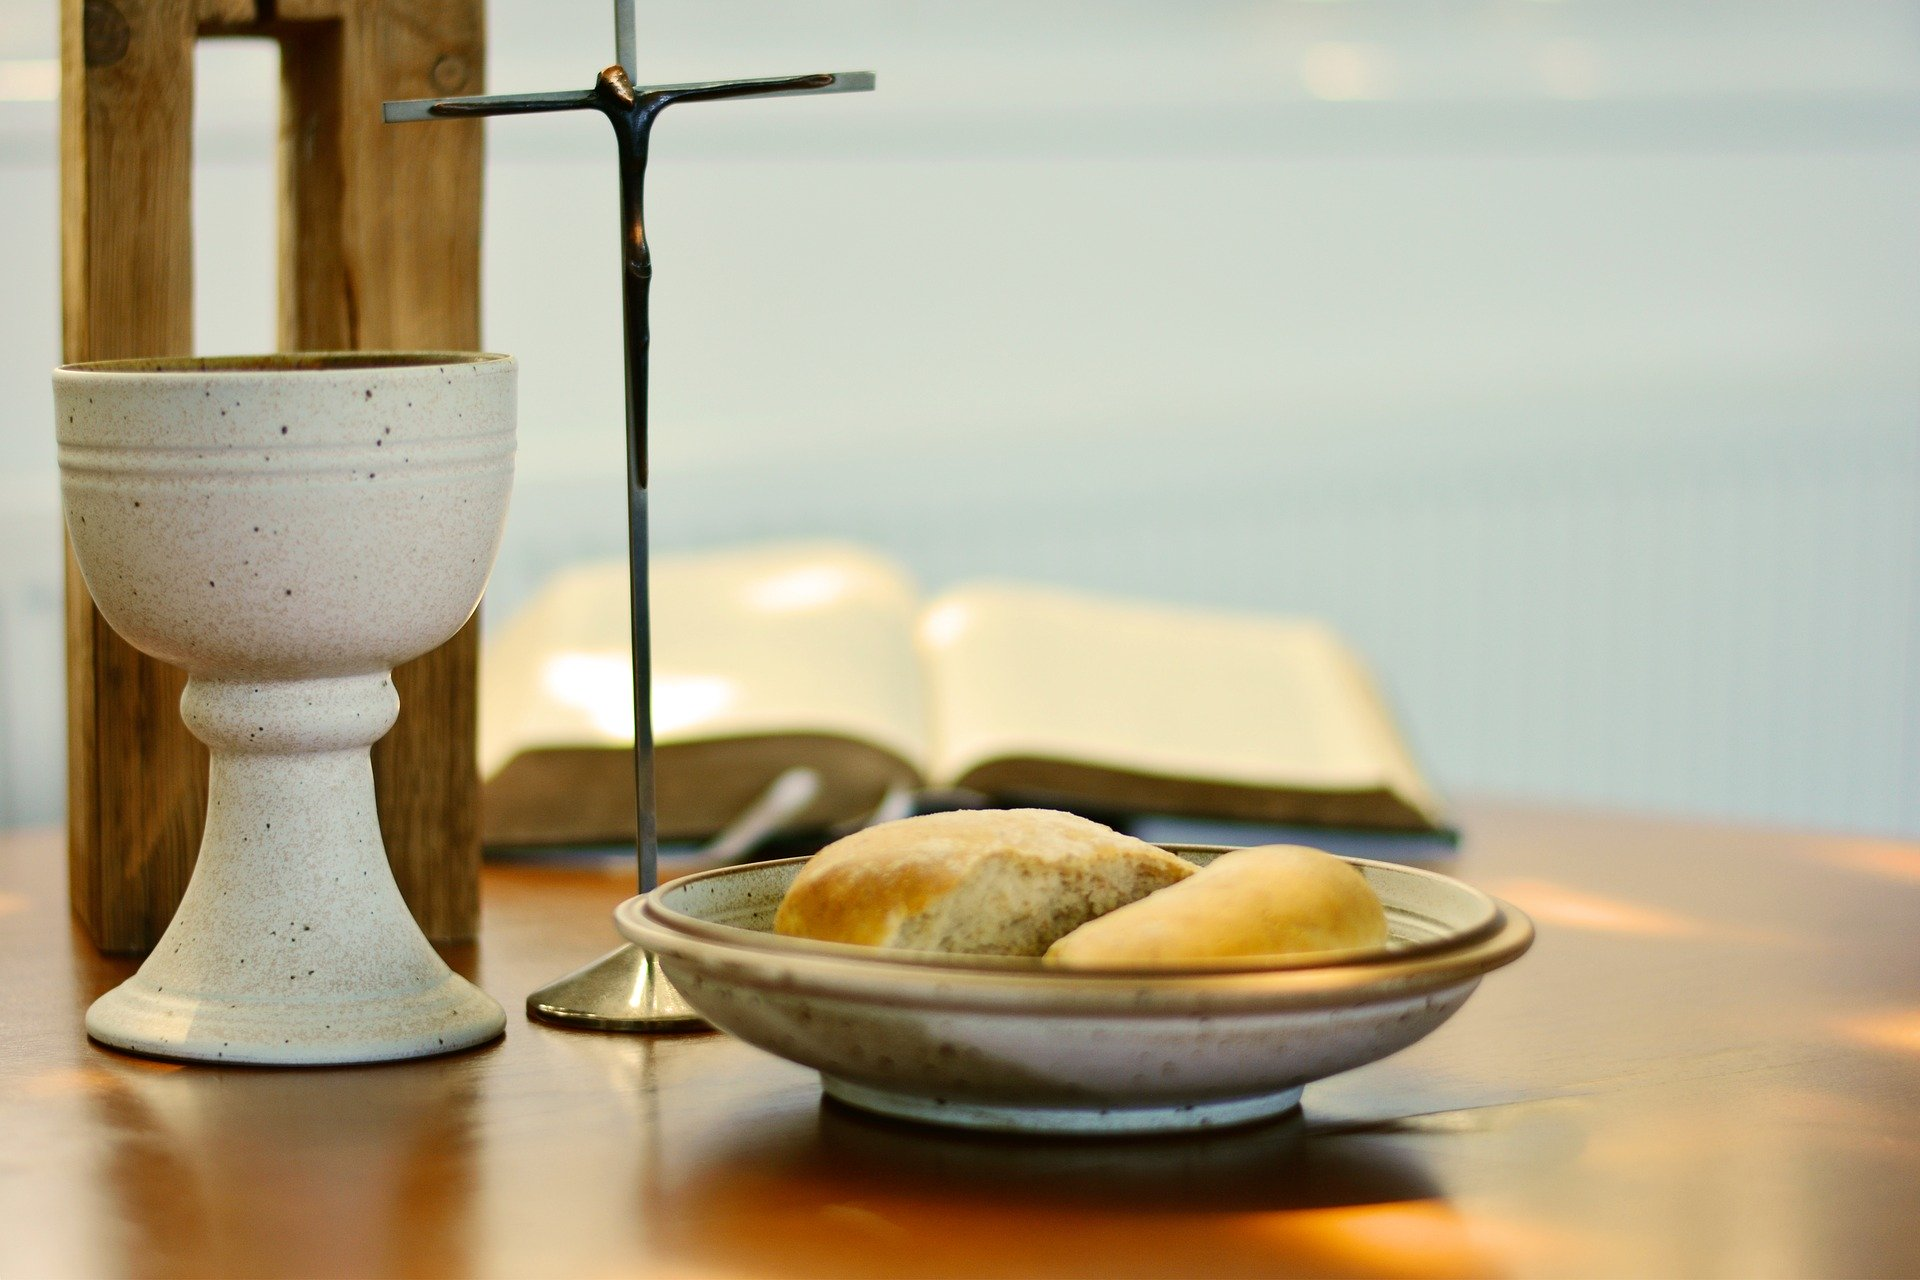 The table is set for Communion with a stone cup and a broken bread loaf on a matching stone dish. A slender metallic cross and open Bible are in the background.